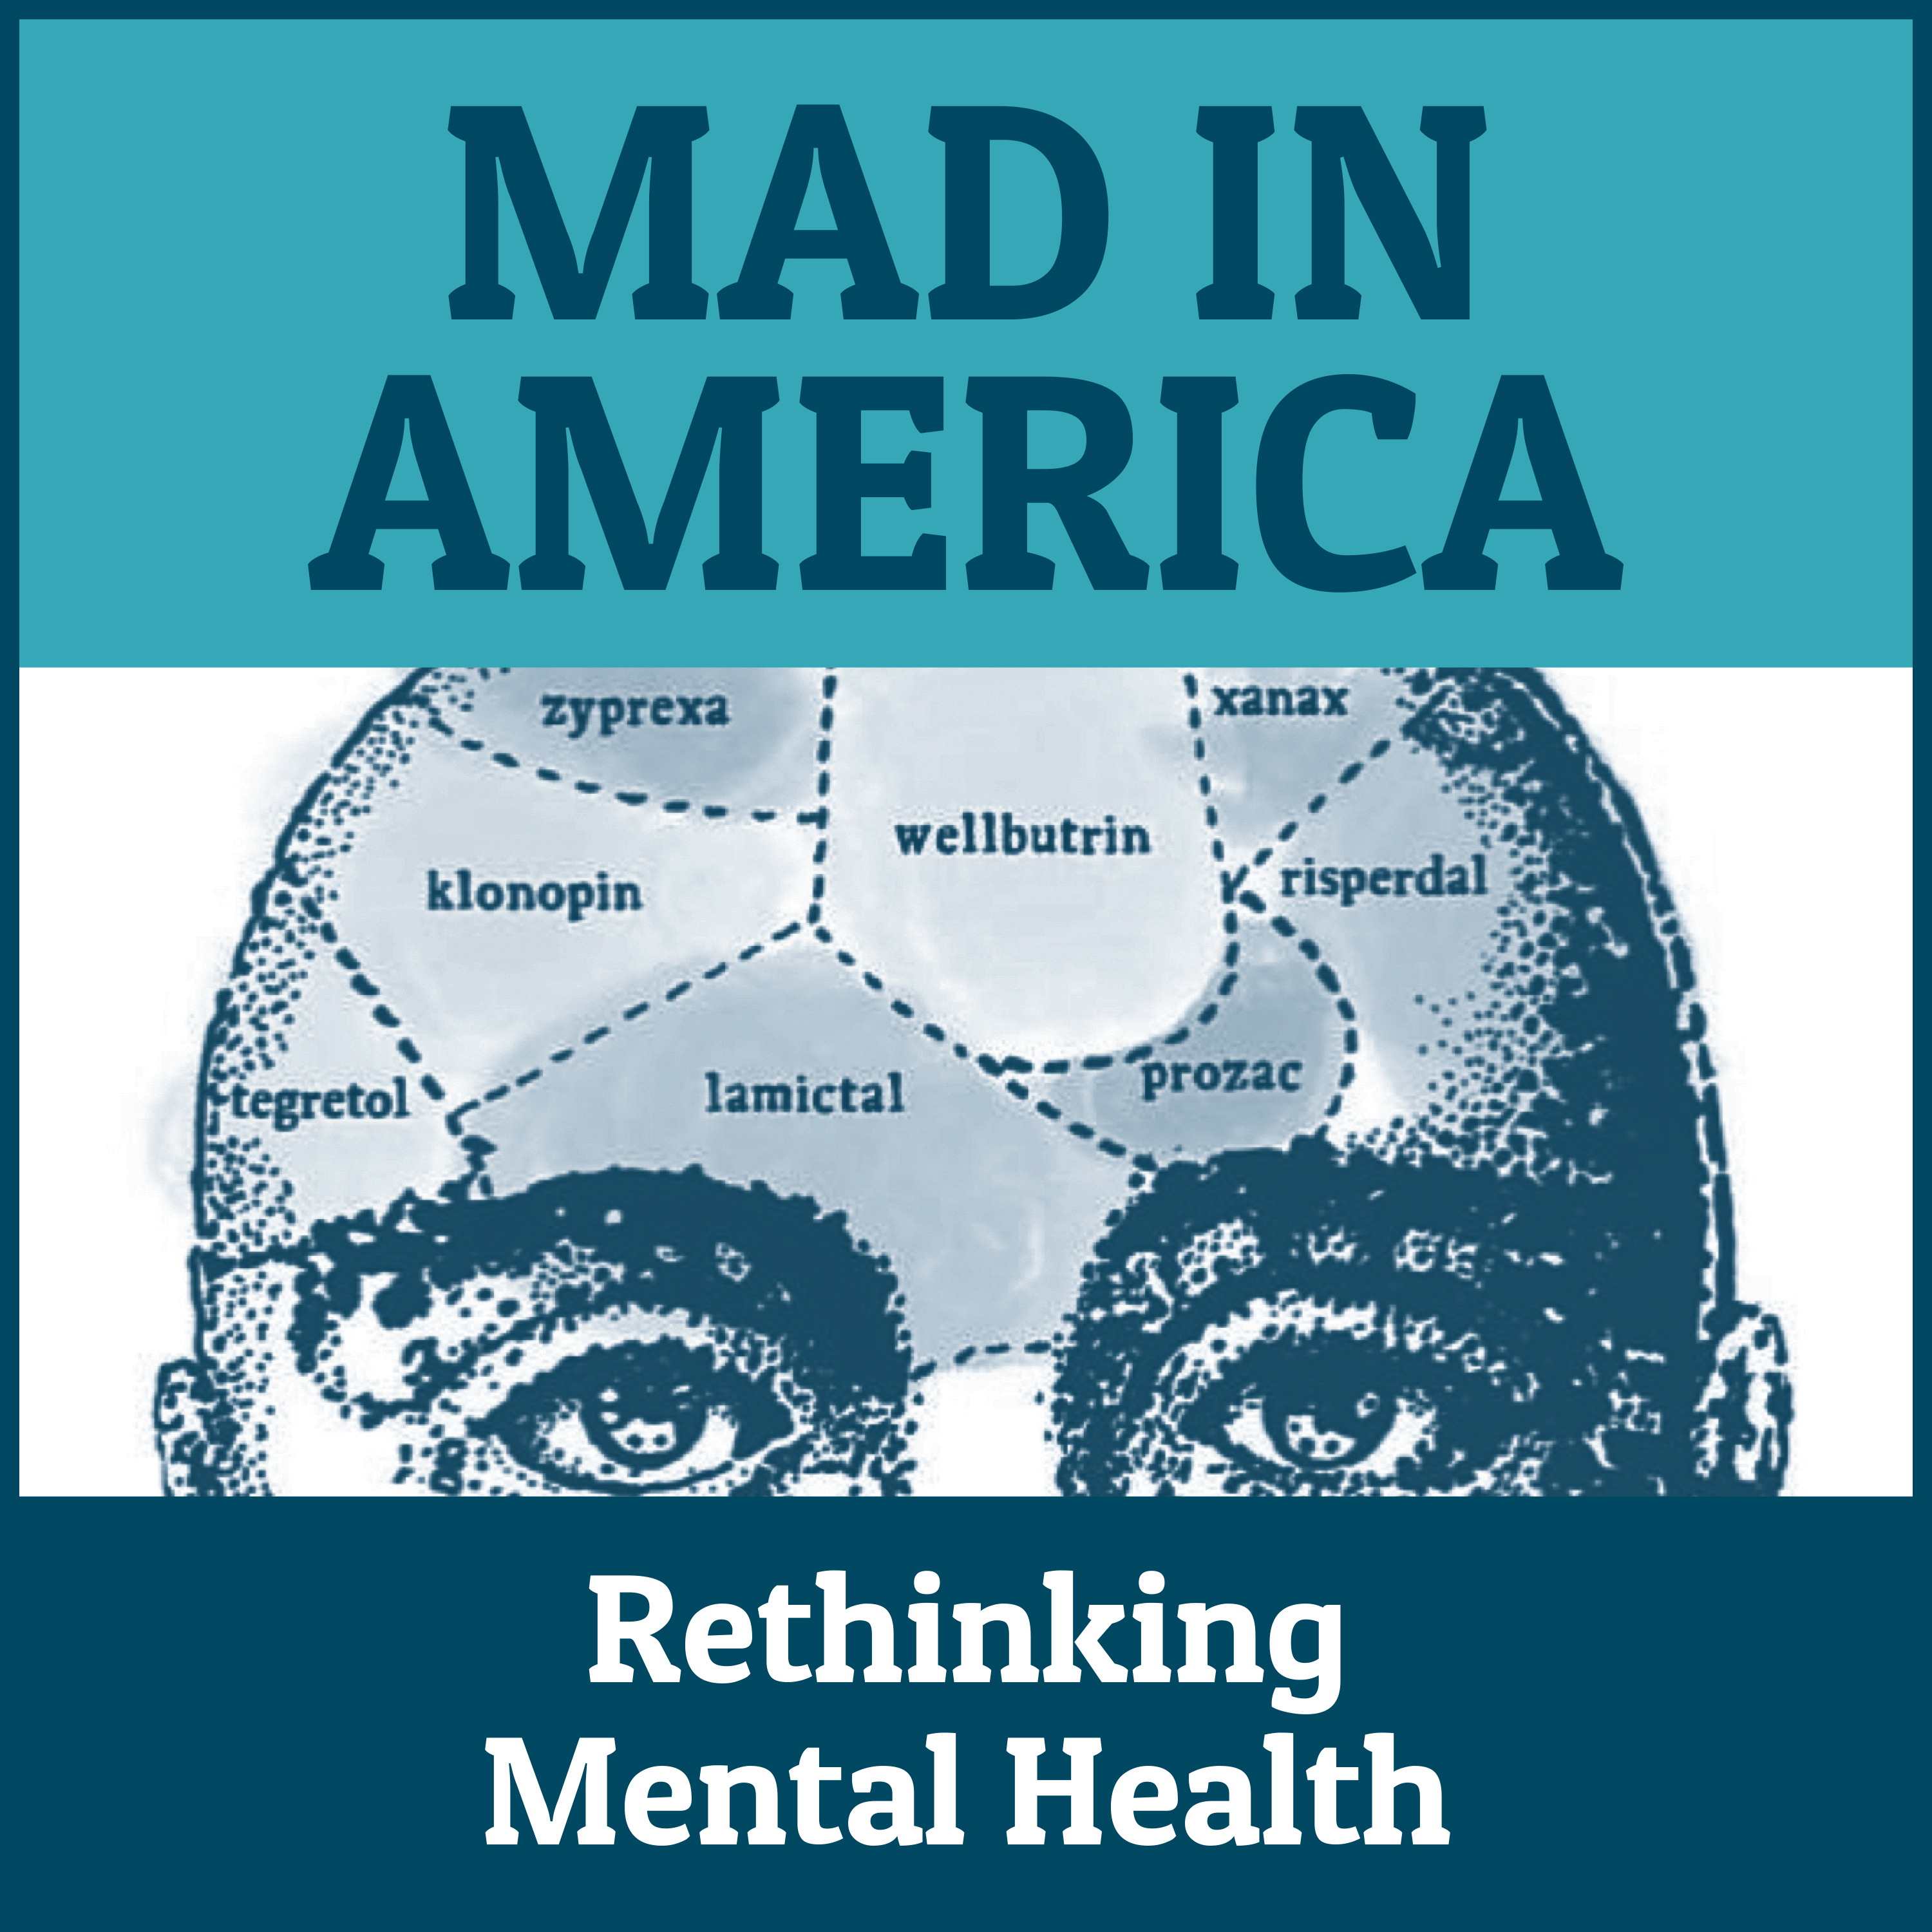 Mad in America: Rethinking Mental Health - Psychiatric Drug Withdrawal - Exploring the Science